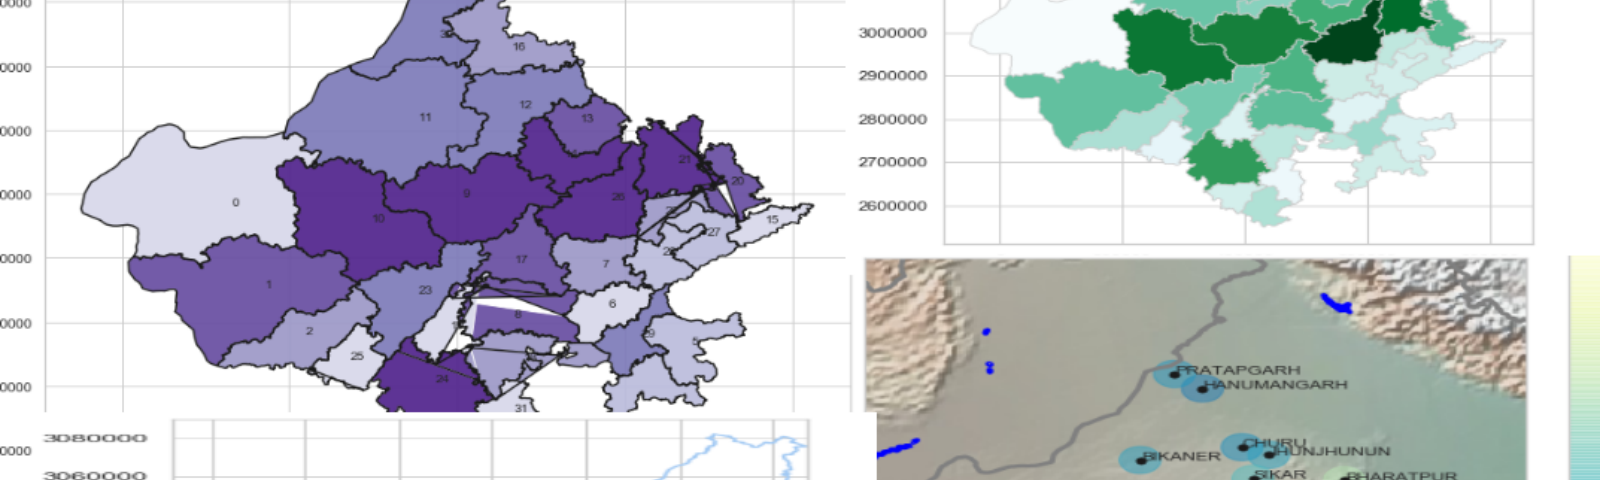 Mapping with Matplotlib, Pandas, Geopandas and Basemap in Python